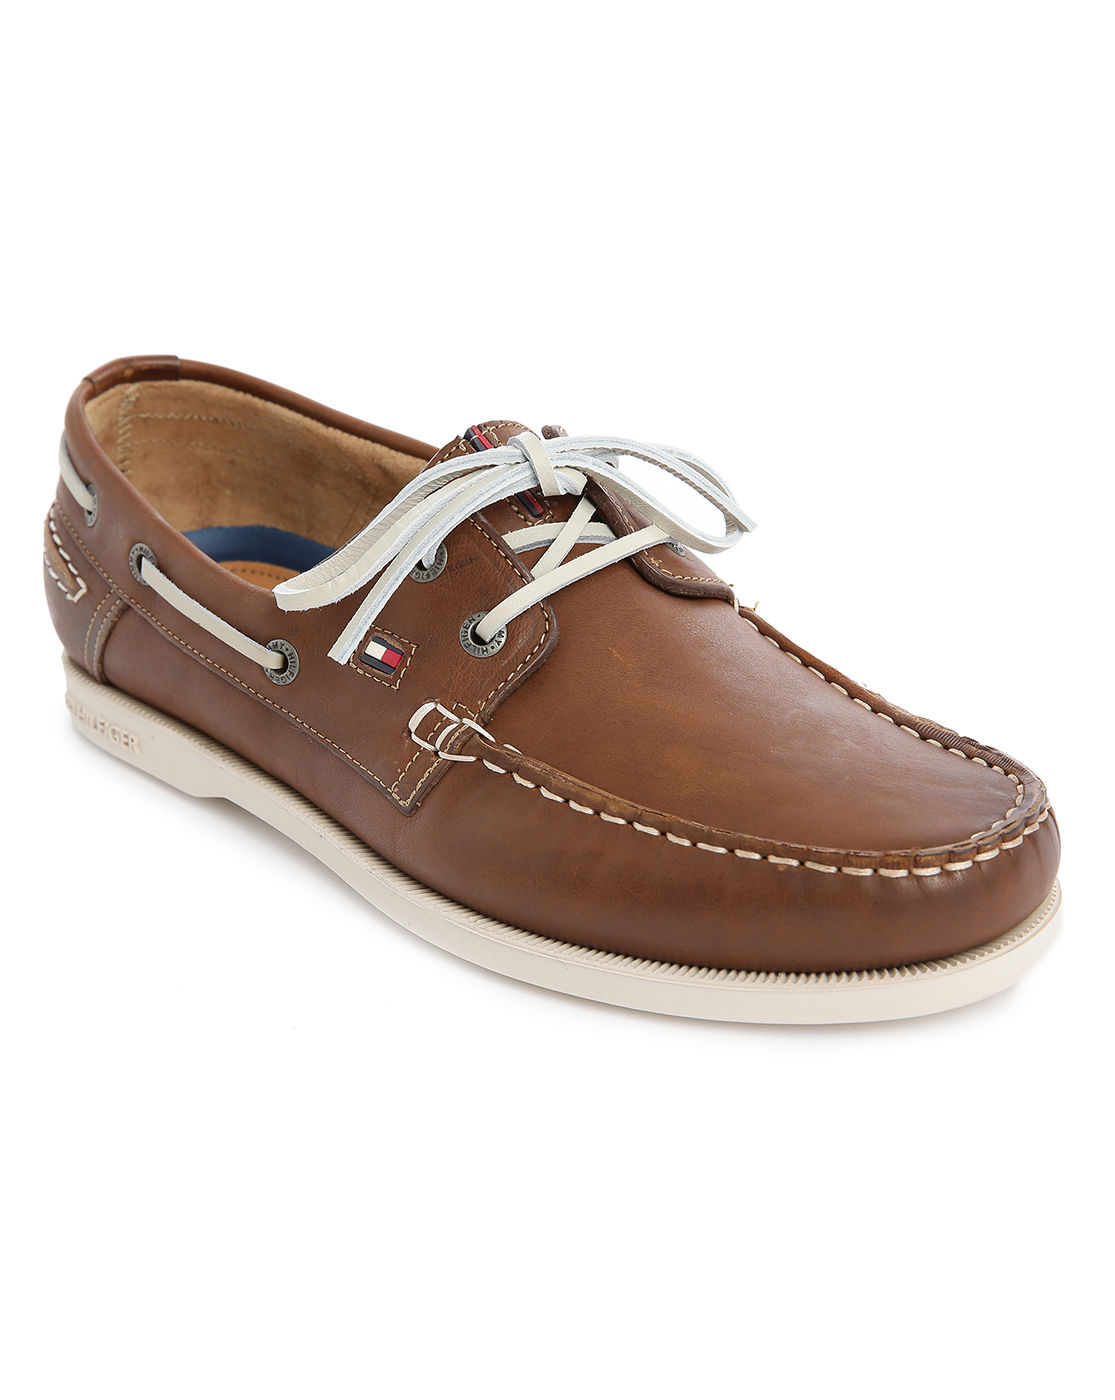 tommy hilfiger men shoes boat – Maskbook